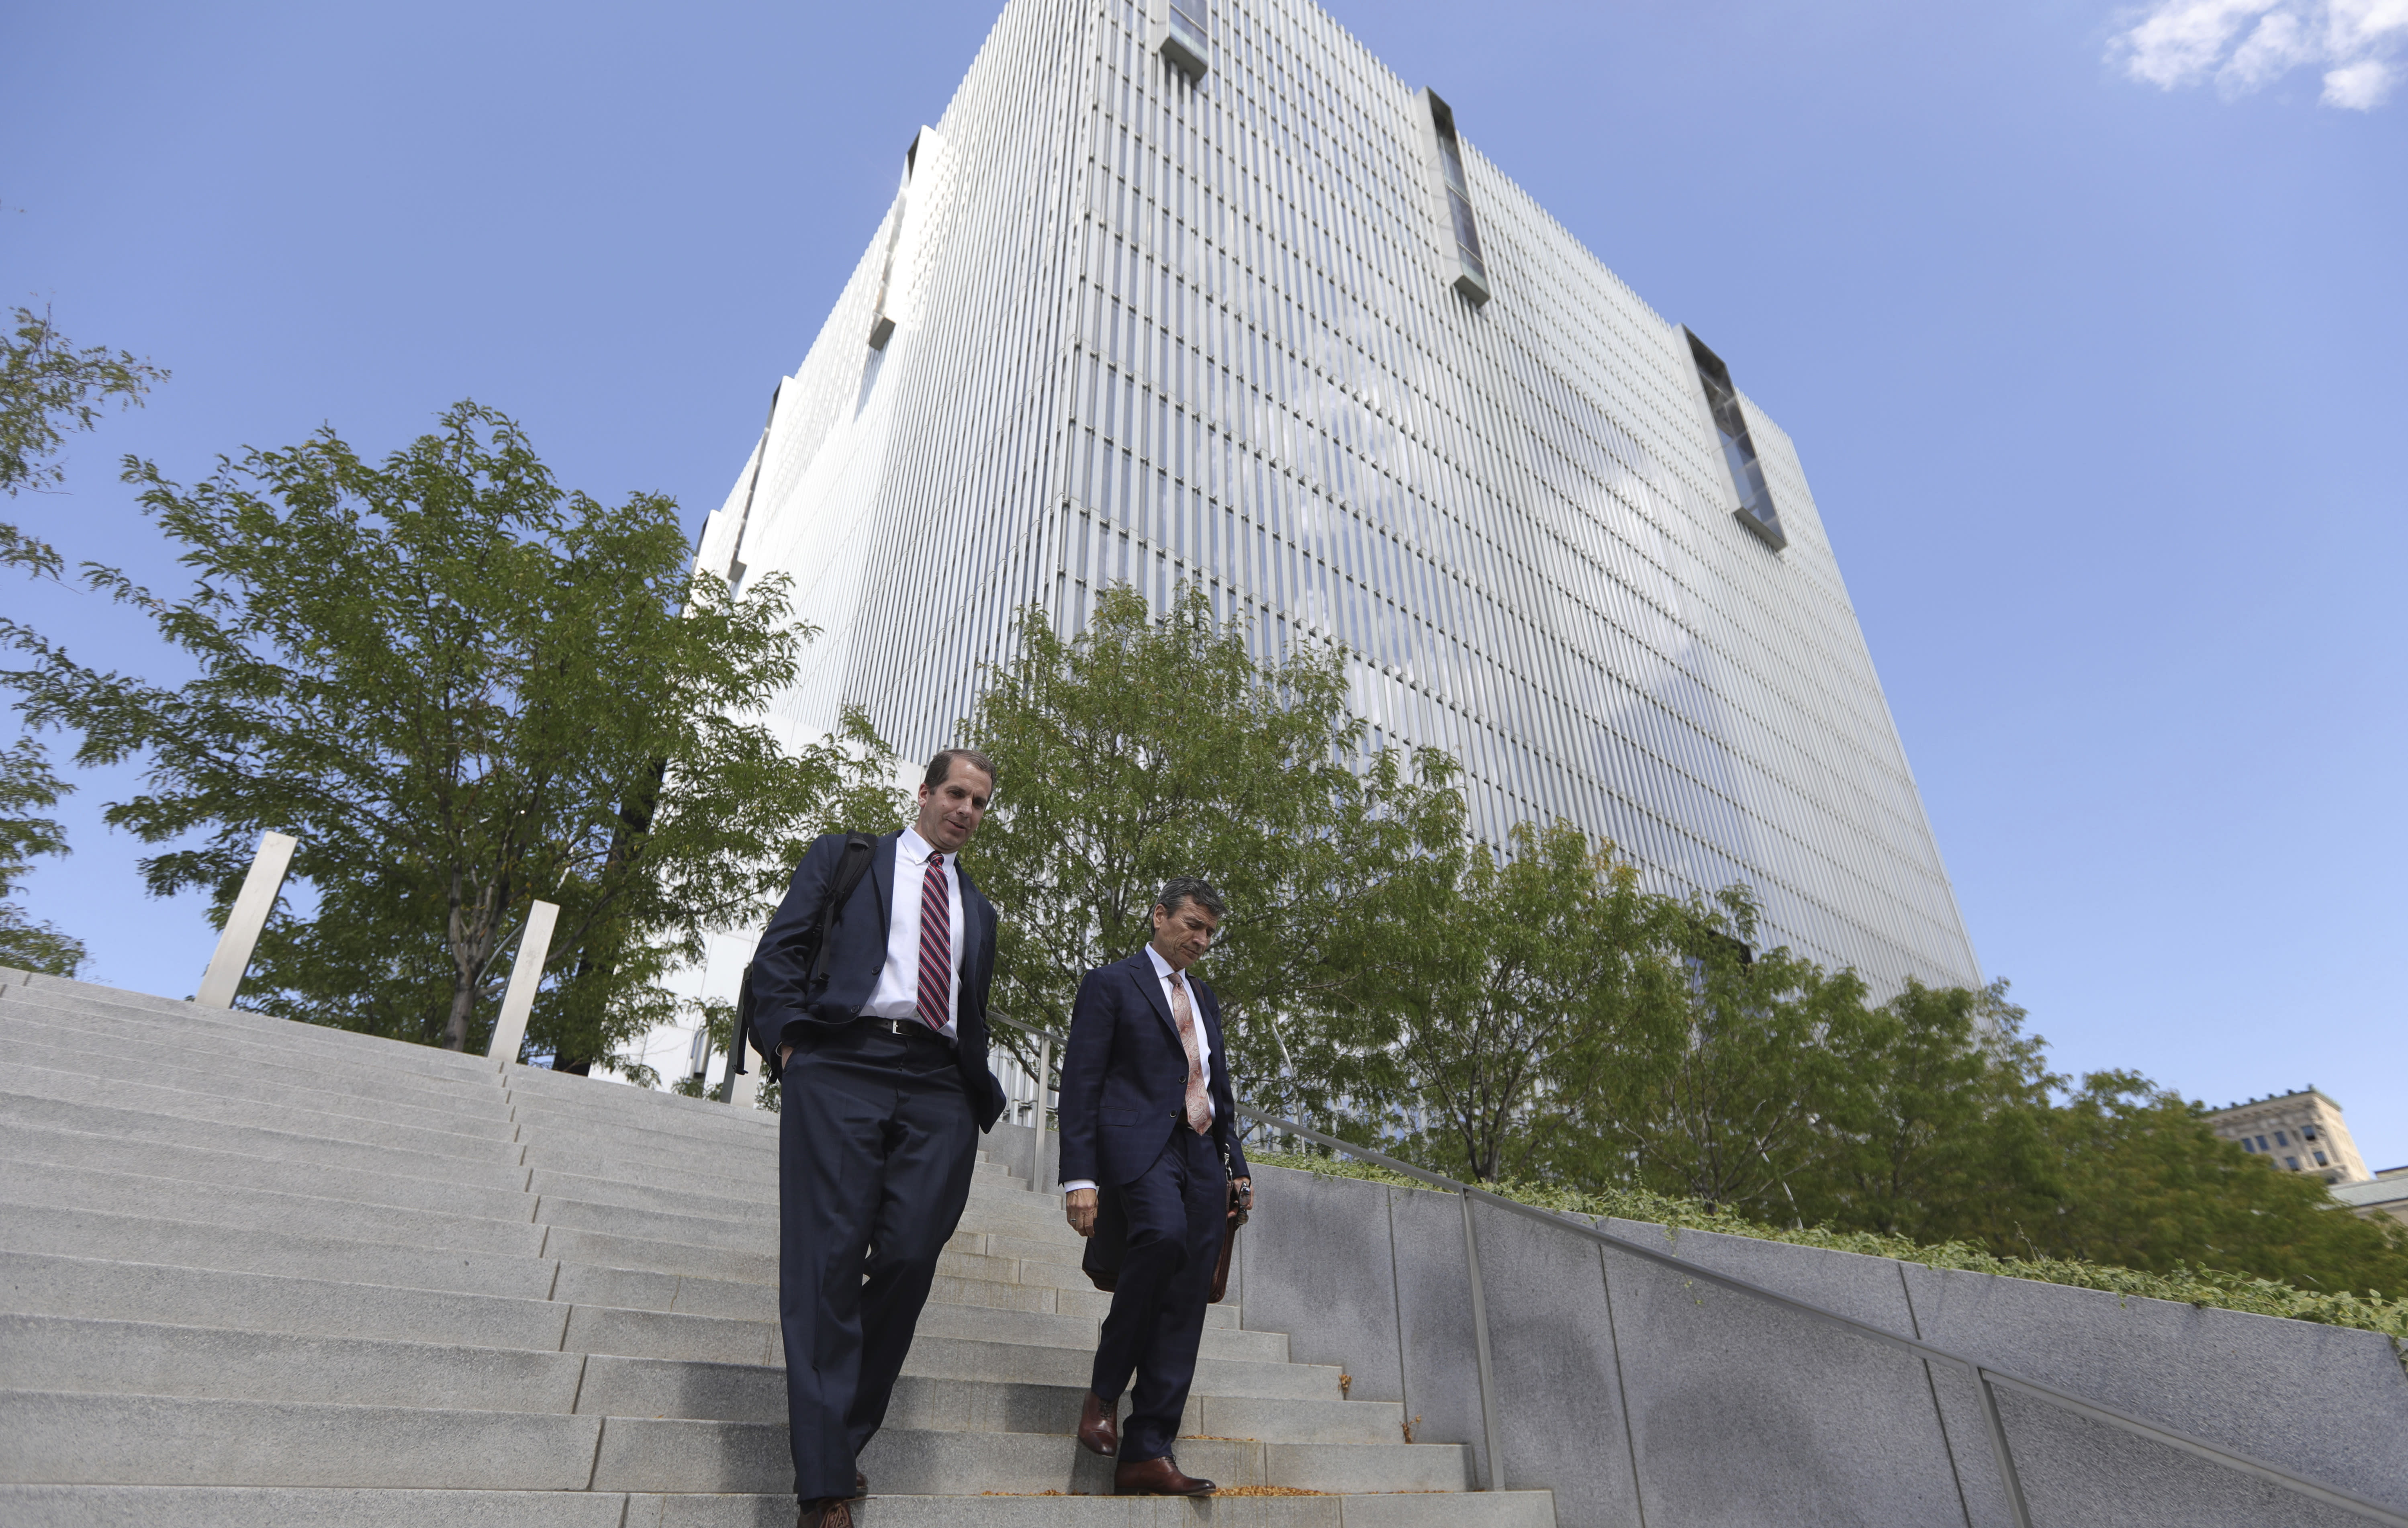 Aaron Shamo's defense attorney Greg Skordas, right, walk from the federal courthouse Thursday, Aug. 29, 2019, Salt Lake City. A jury is deliberating in the case of a Utah man accused of running a multimillion-dollar opioid ring that shipped fake prescription drugs across the country, causing at least one fatal overdose. Prosecutors said during closing arguments that Shamo's operation helped fuel the nation's opioid epidemic by making hundreds of thousands of pills available to addicts and other users. (AP Photo/Rick Bowmer)